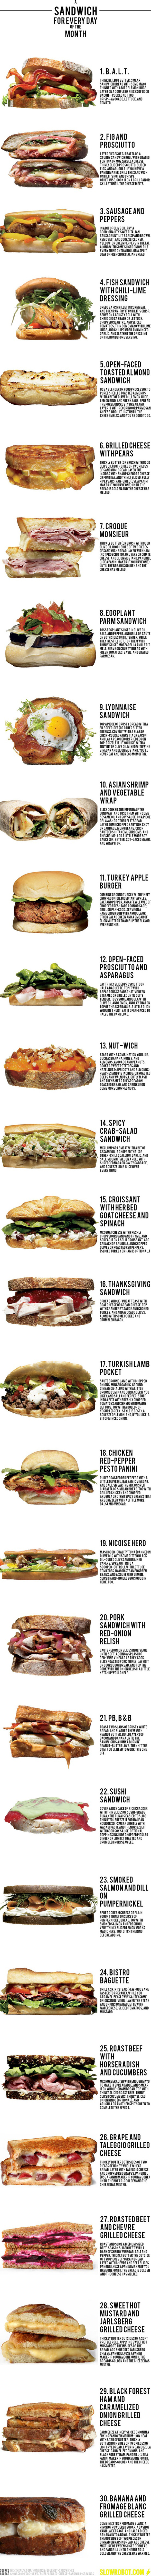 Sandwhich recipes